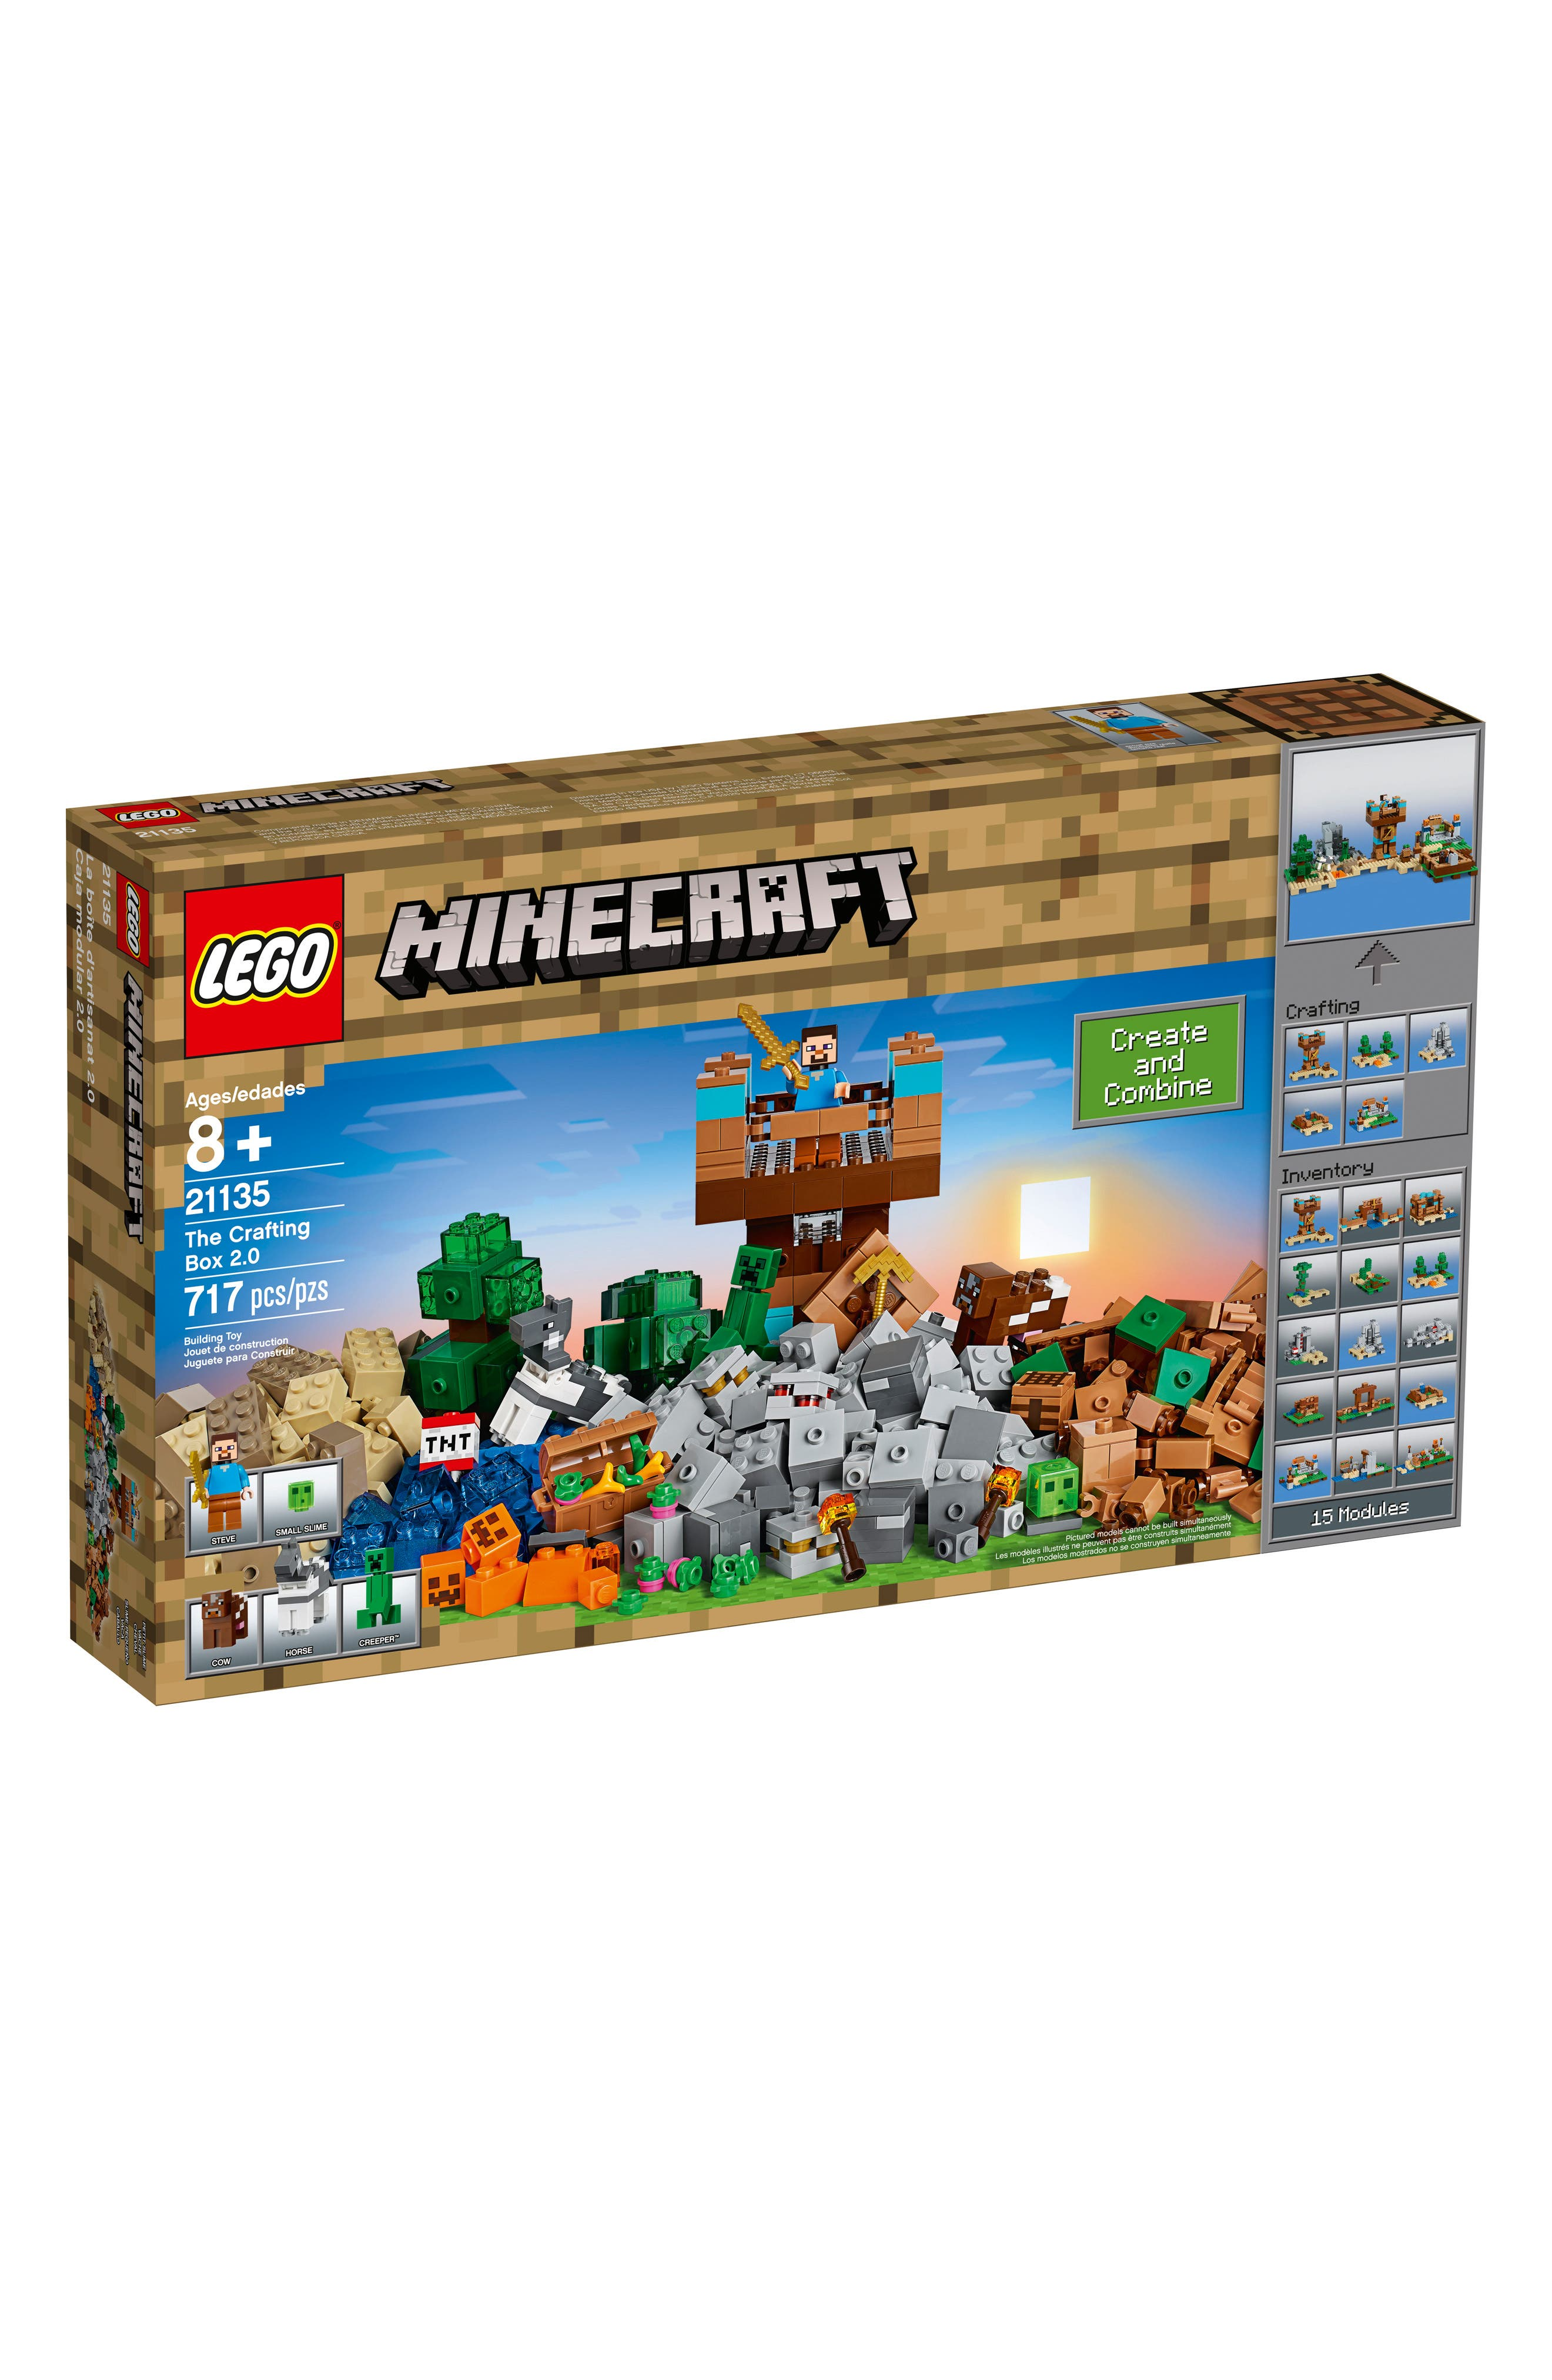 Minecraft<sup>™</sup> The Crafting Box 2.0 Play Set - 21135,                             Main thumbnail 1, color,                             Multi